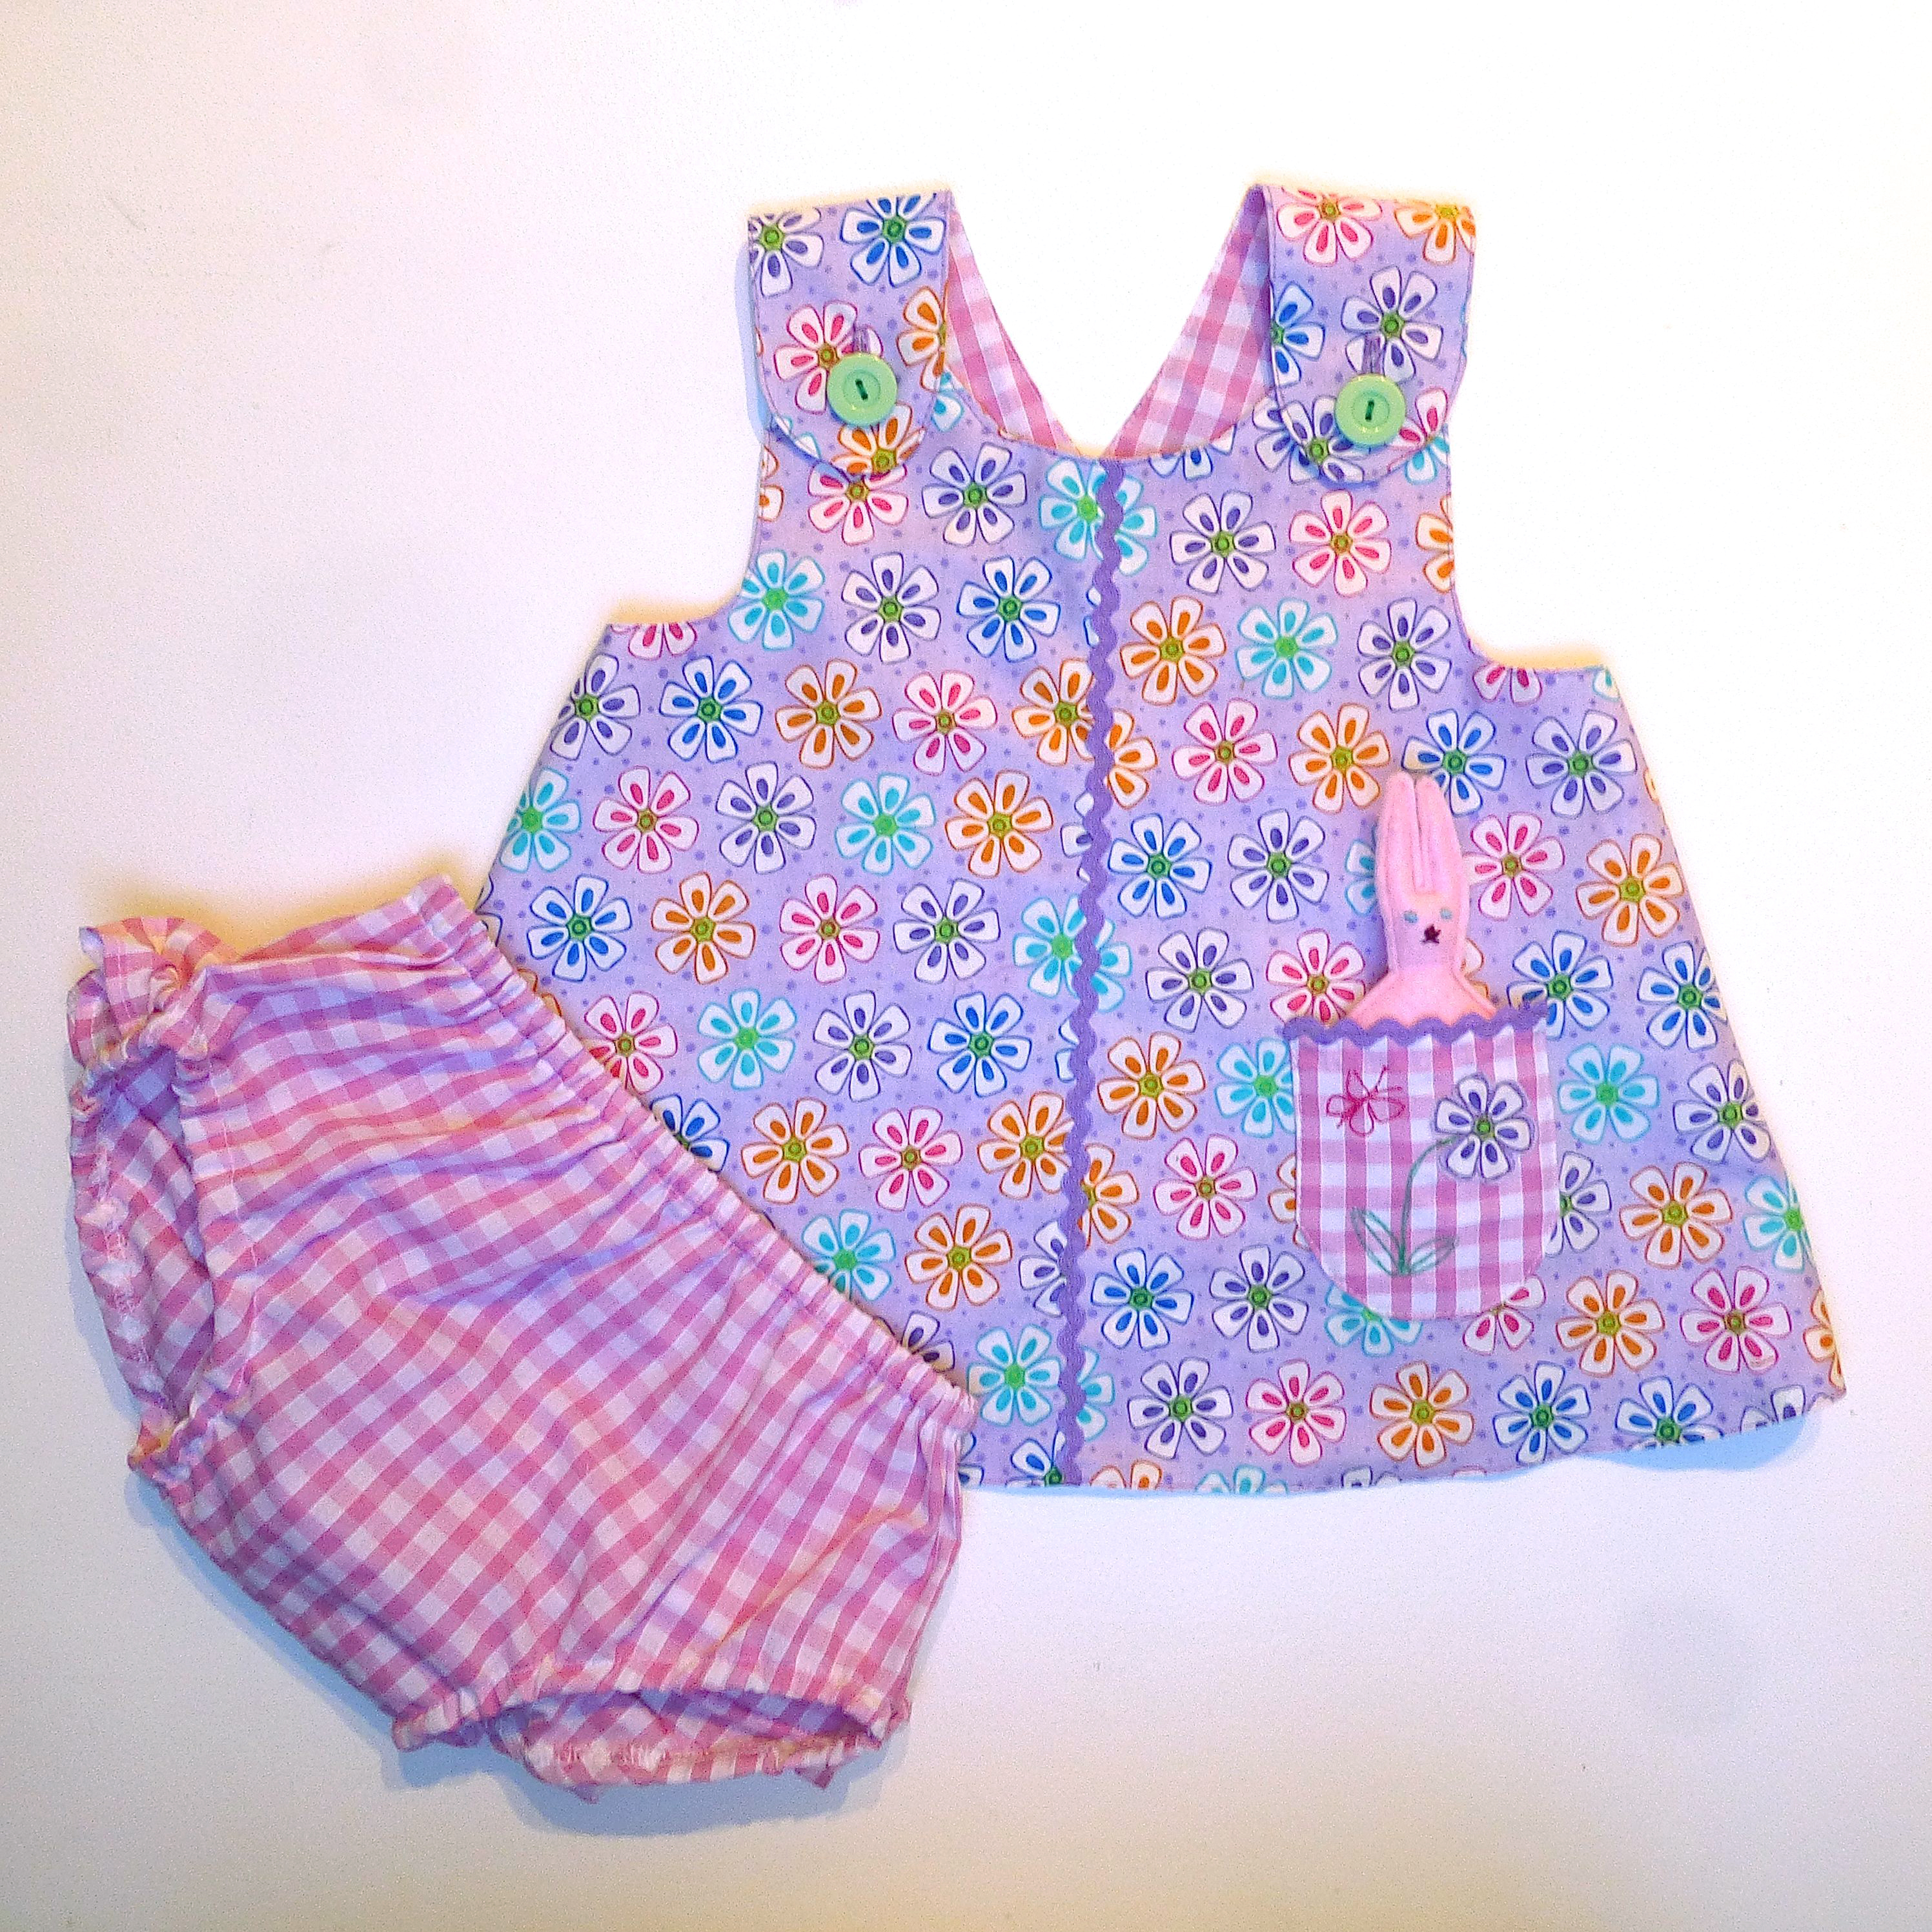 Wrap Dress And Frilly Knickers Diaper Cover For A Baby Or Toddler